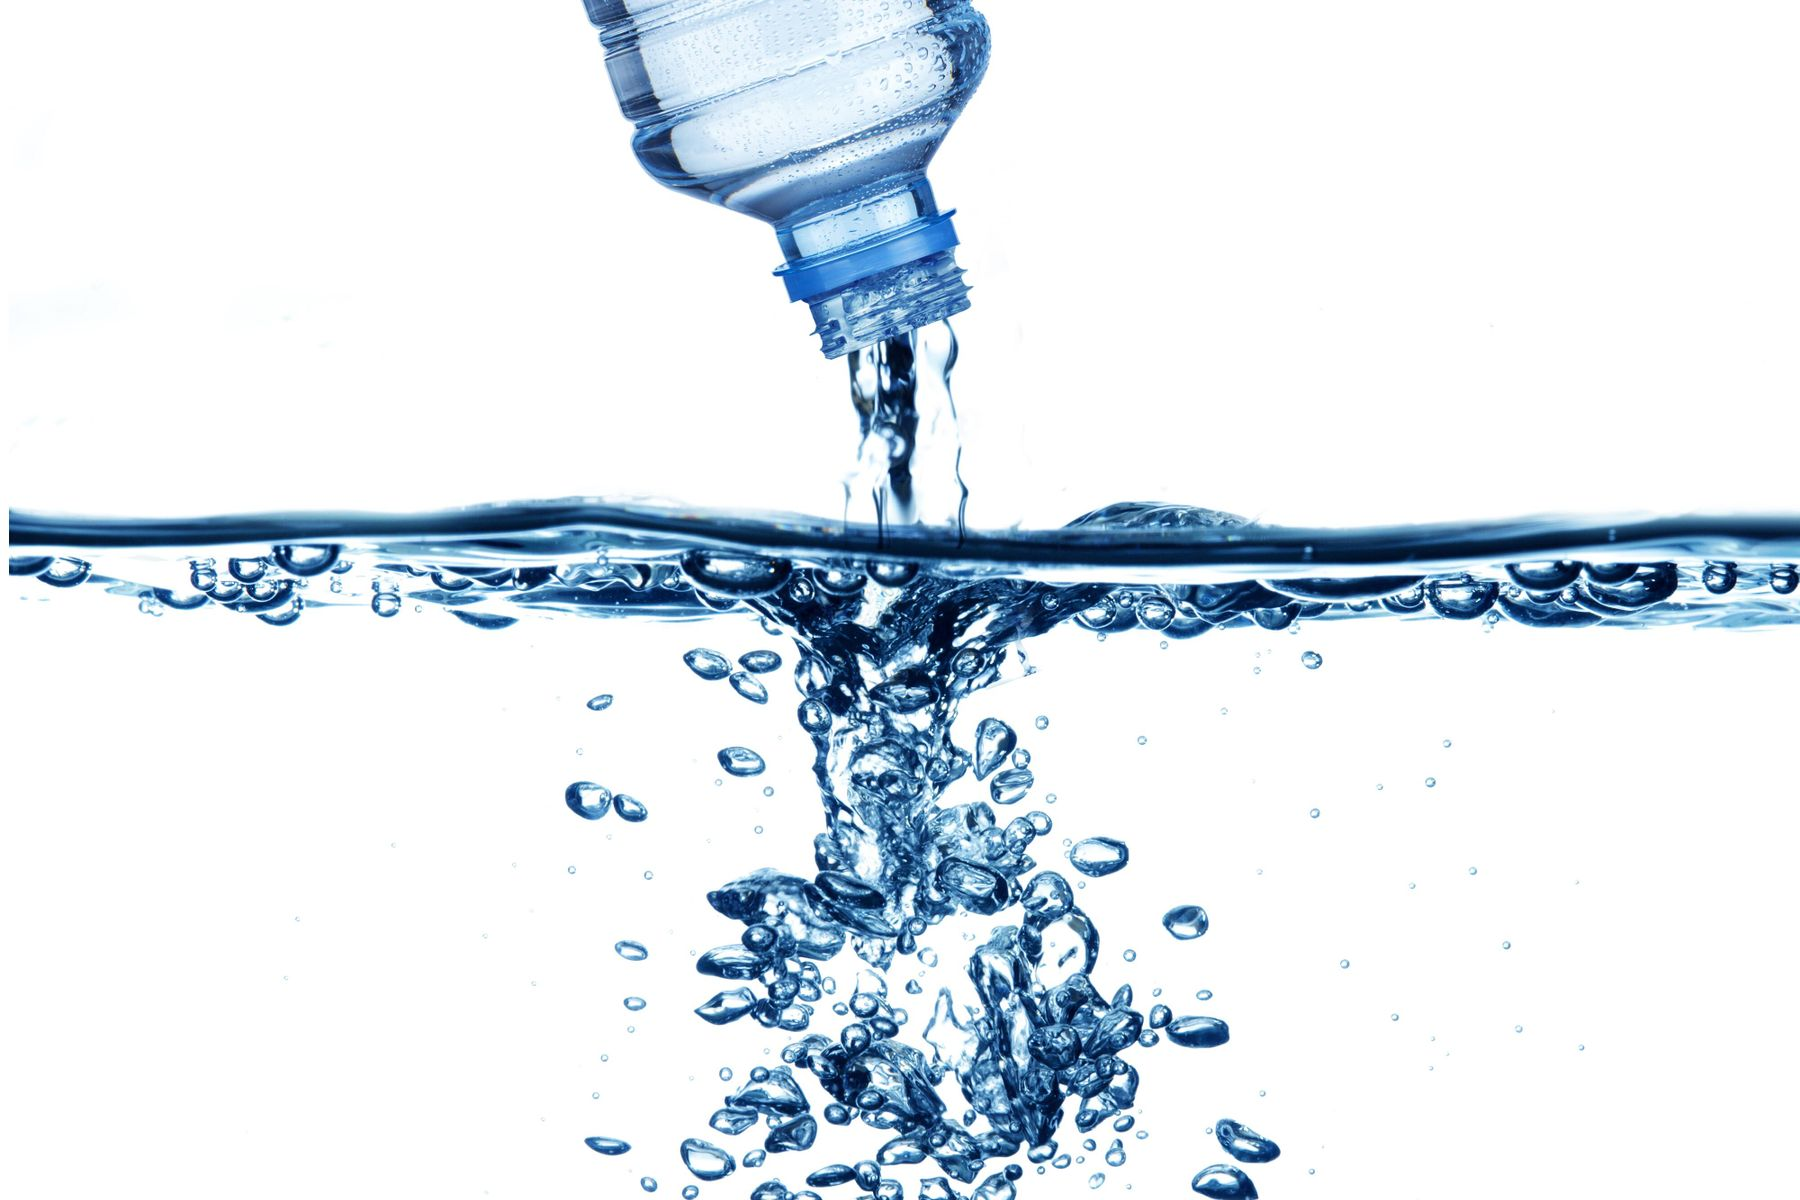 Don't Compromise on Your Family's Health - Signs That Your Water Filter Needs a Replacement